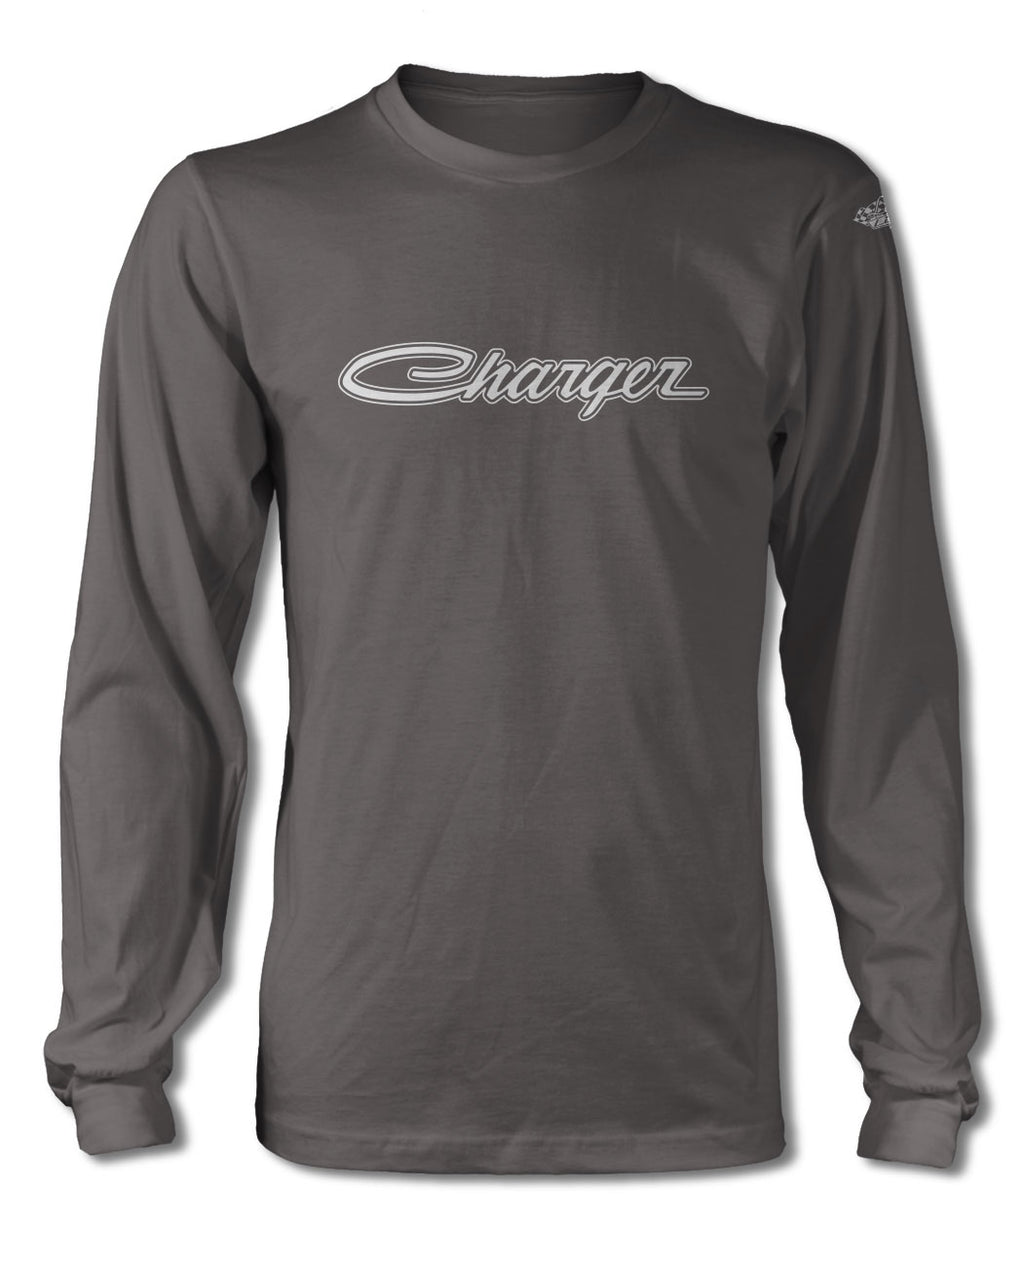 Dodge Charger 1968 - 1973 Emblem T-Shirt - Long Sleeves - Emblem